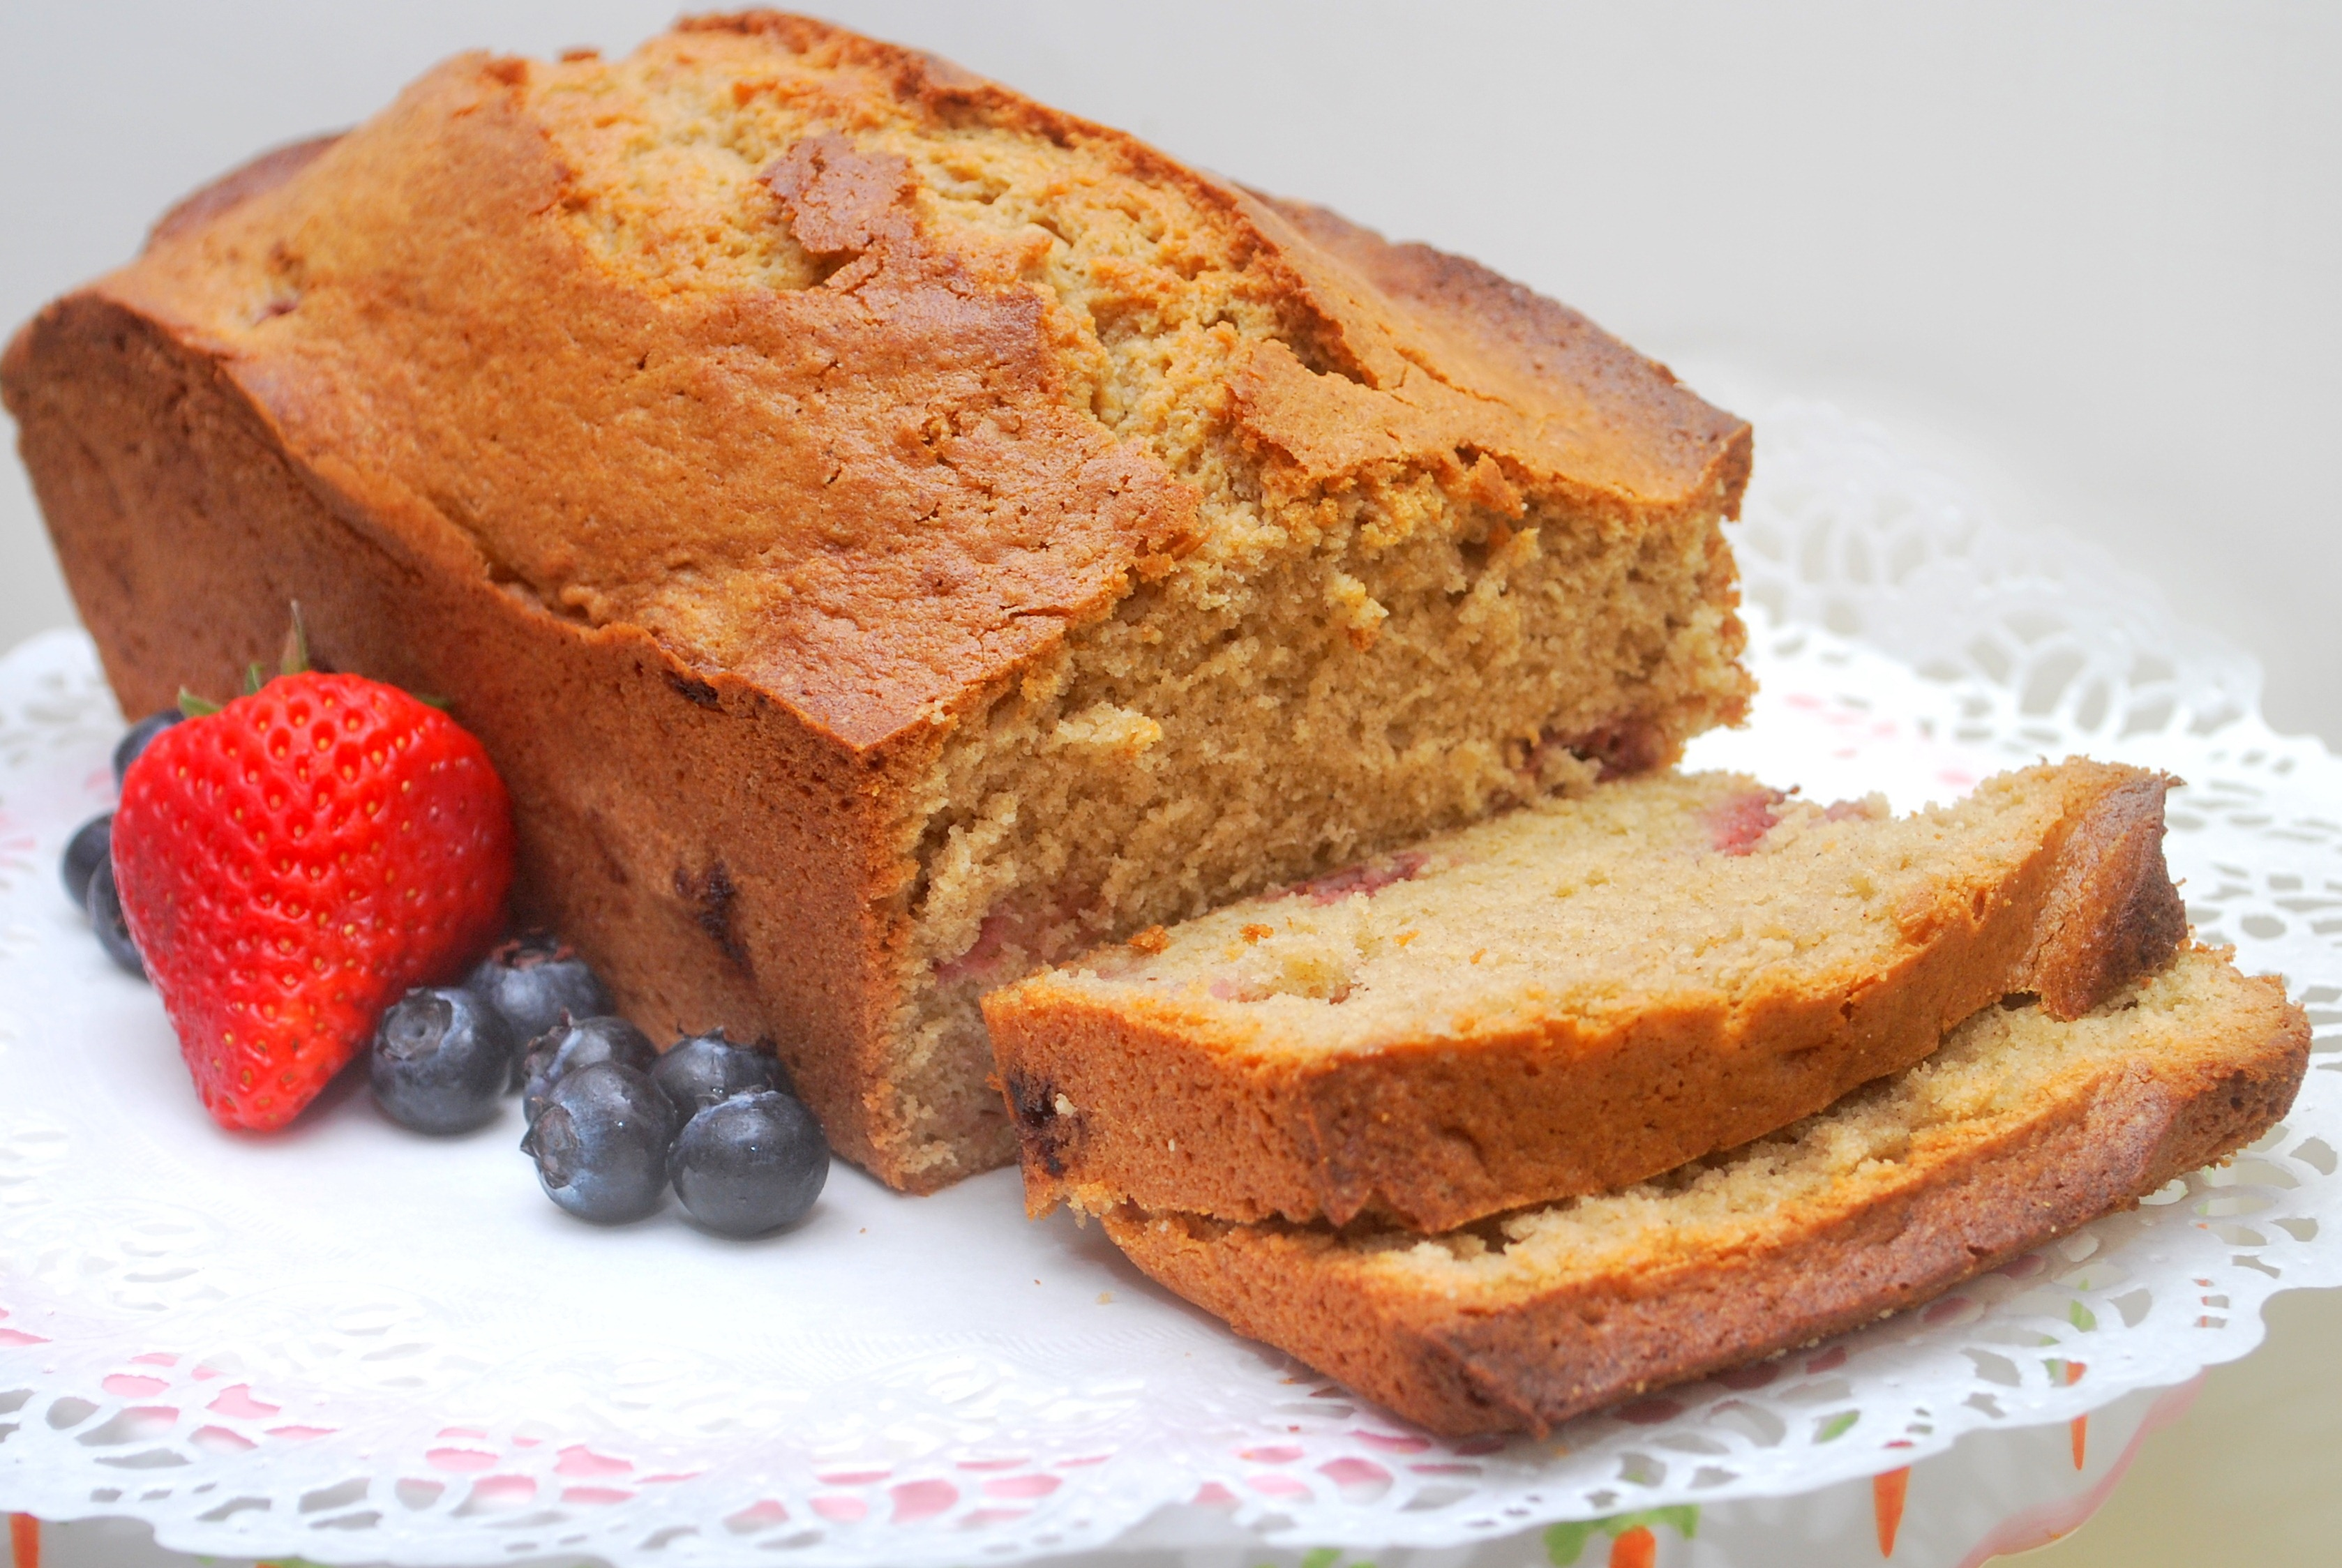 Supplements and Fruited Spice Loaf Cake